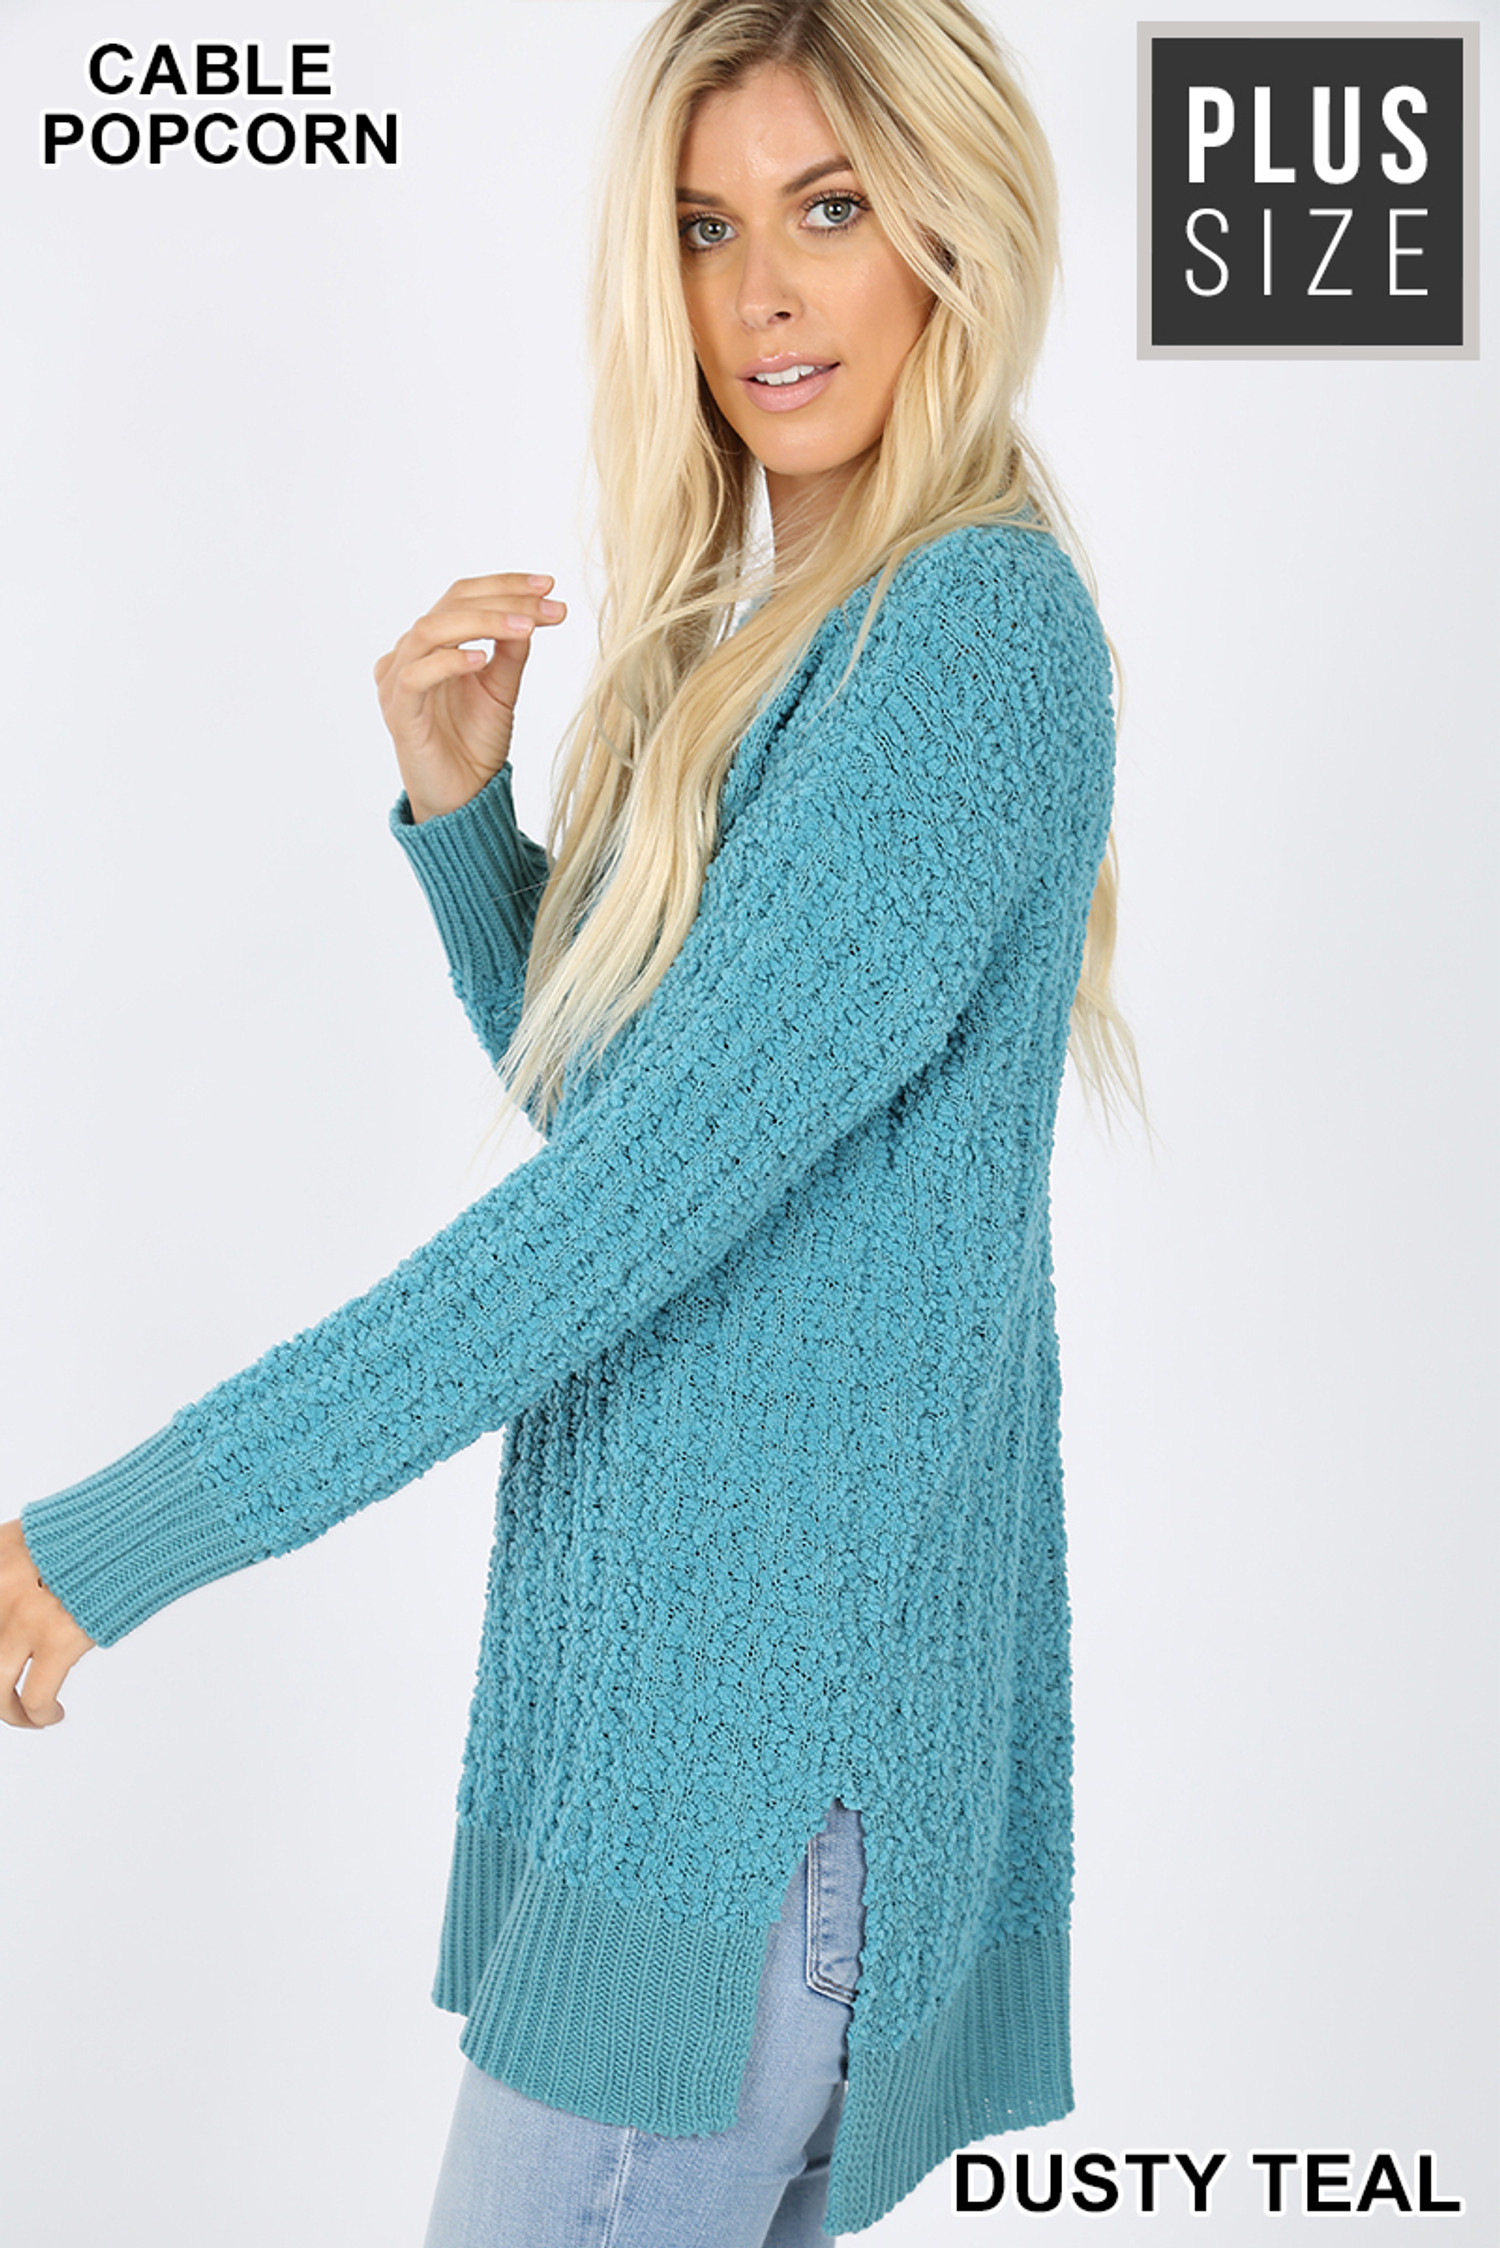 Left side image of Dusty Teal Cable Knit Popcorn Round Neck Hi-Low Plus Size Sweater